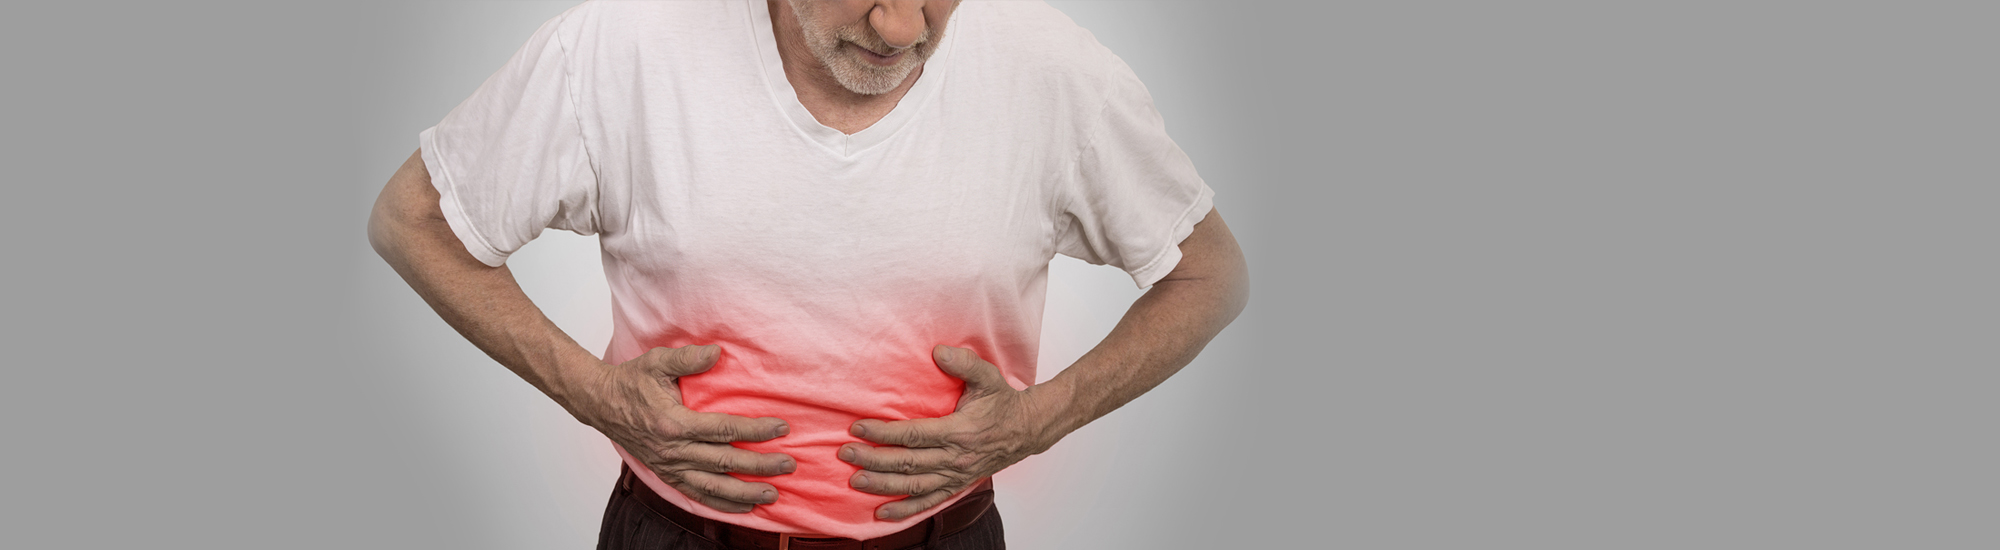 Ayurvedic treatment for Bowel control problems -Fecal incontinence- Diagnosis